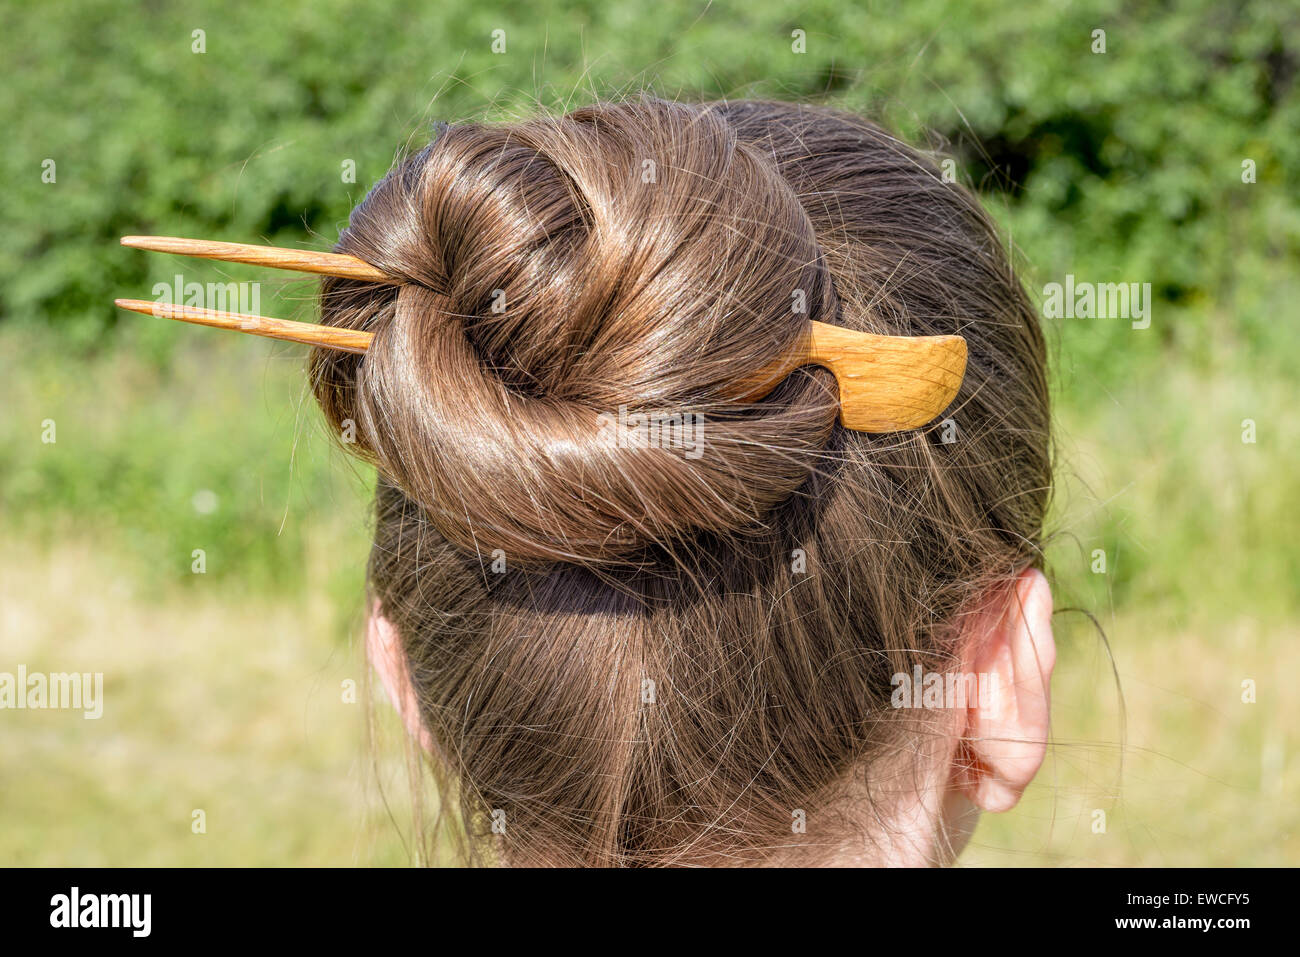 Detail of a chignon with a wooden hairpin to keep the hair attached together - Stock Image